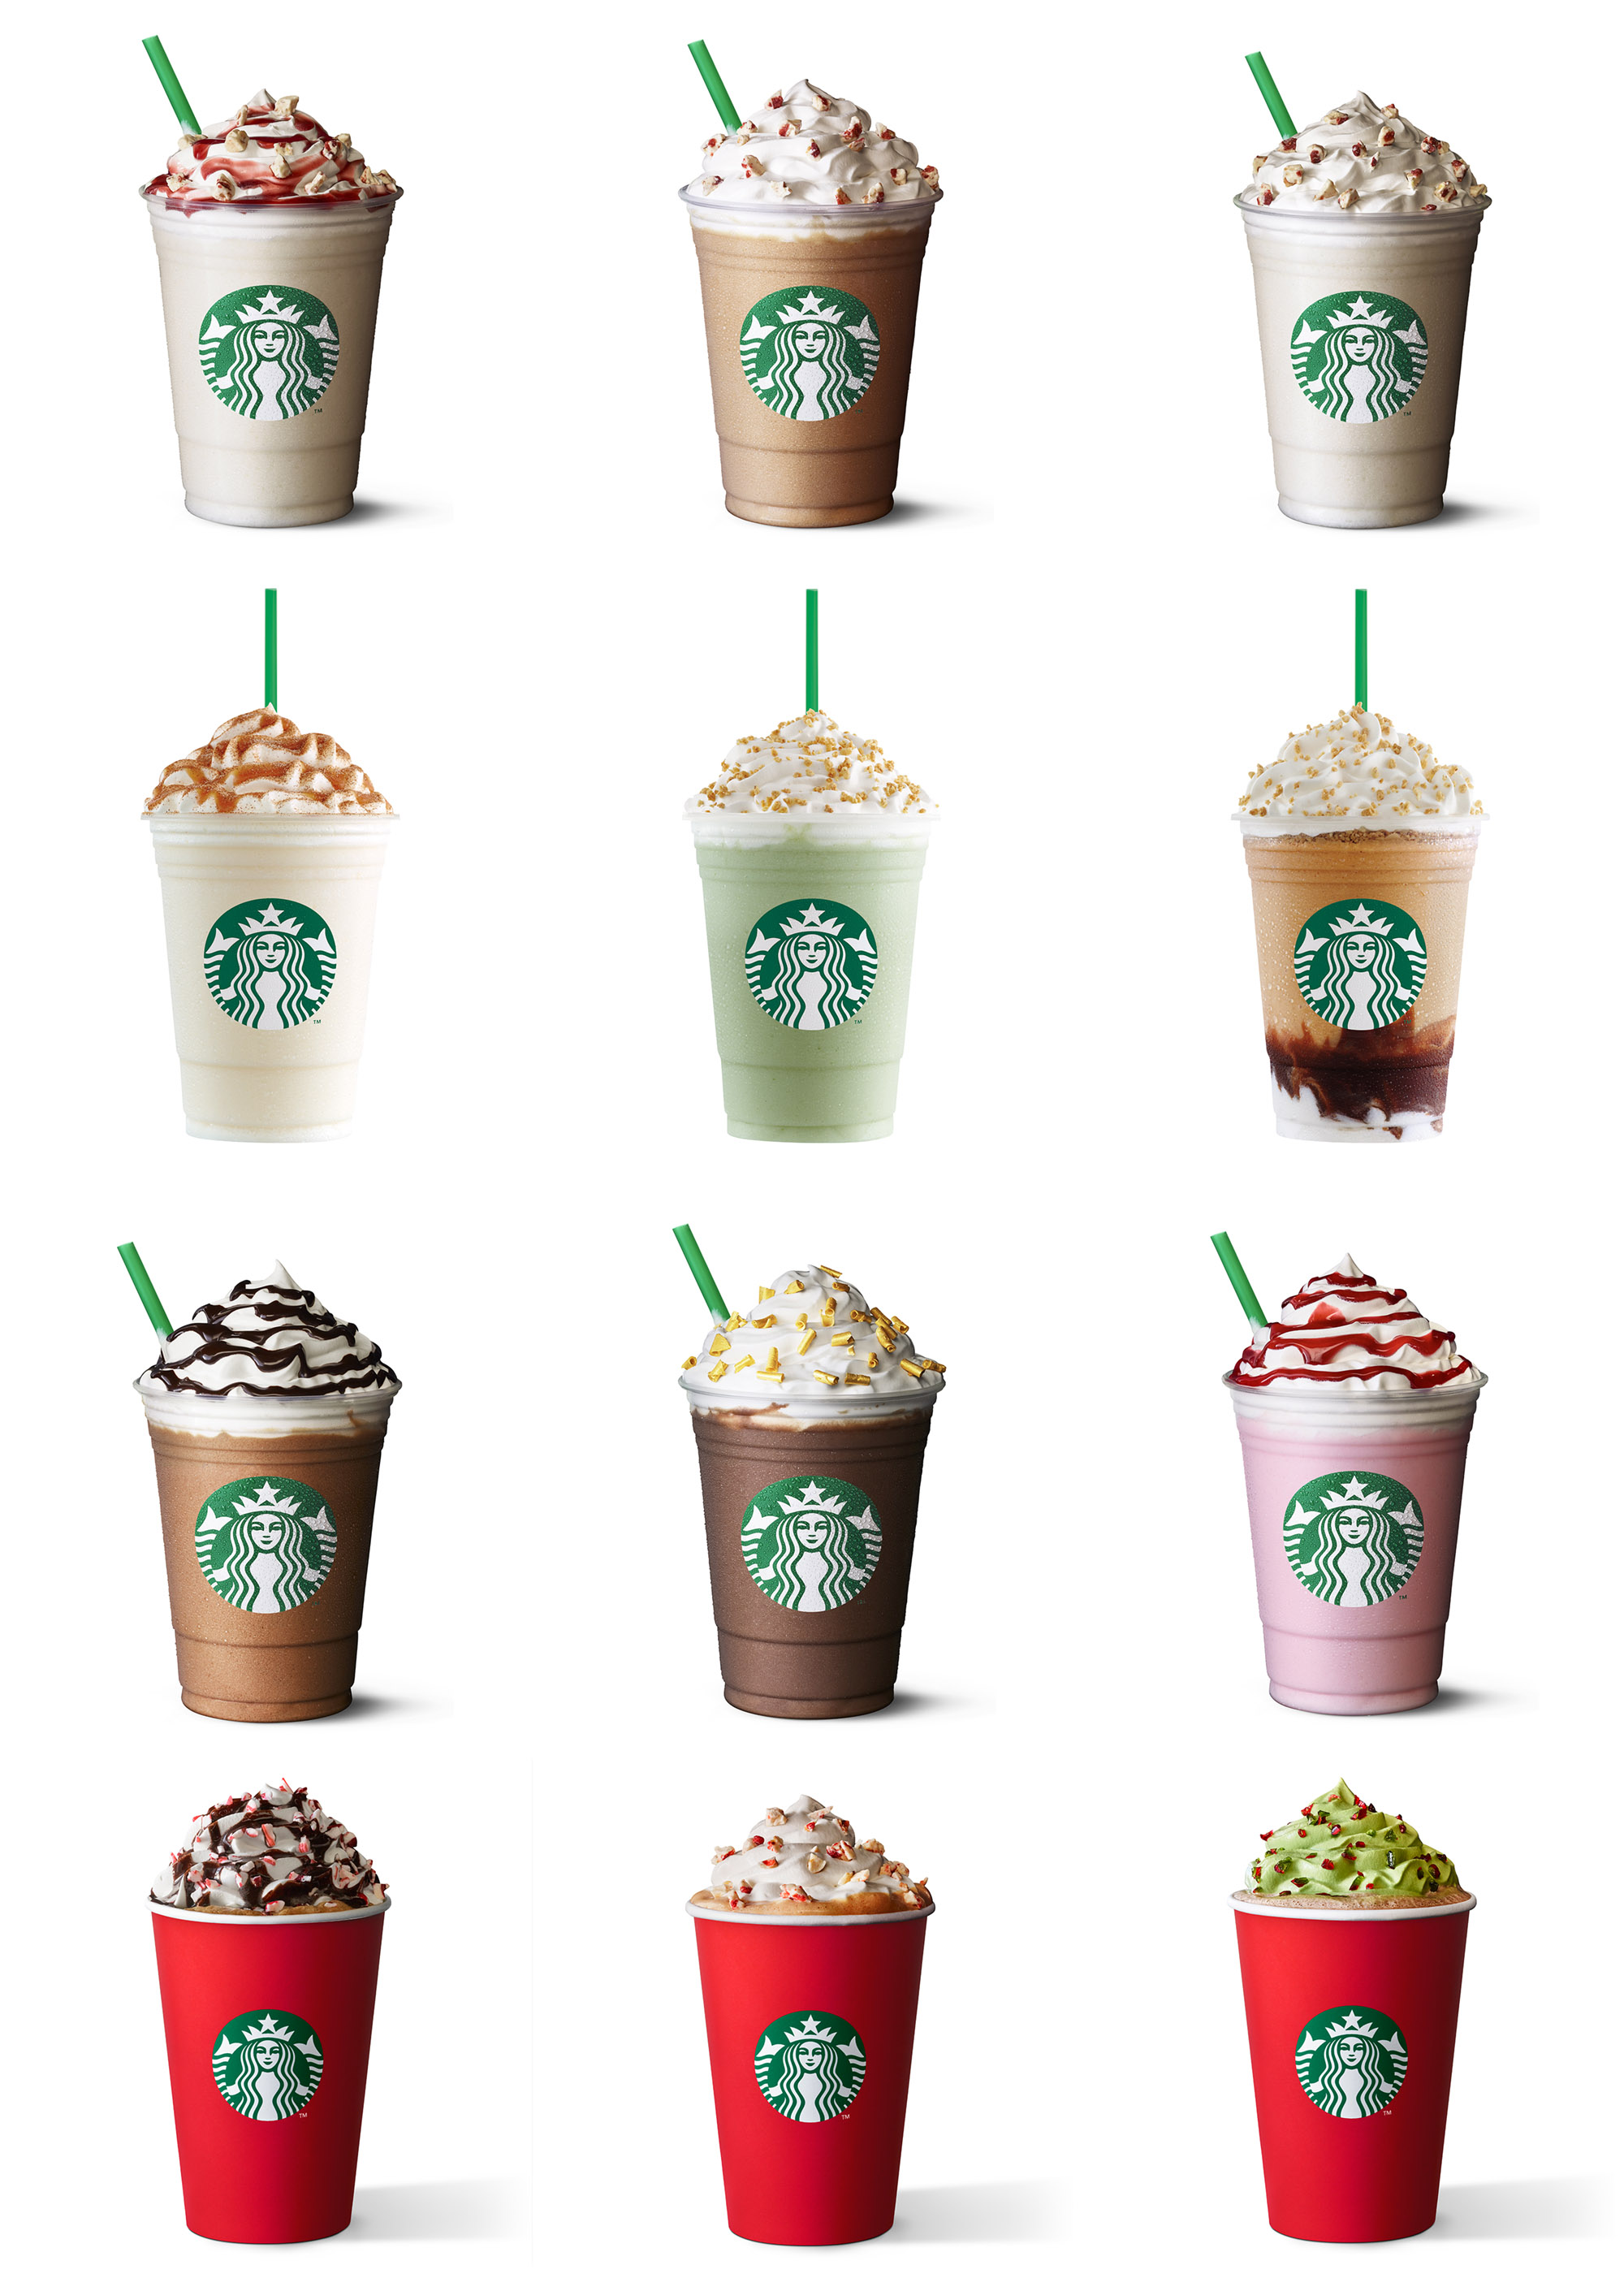 Robyn Valarik San Francisco Food & Drink Stylist - Starbuck, fraps, frapps, frappuccino, straws, cups, logo, siren, whip, whipped-cream, flavors, strawberry, mocha, caramel, chocolate, drinks, cold, blended, frozen, creamy, food-photography